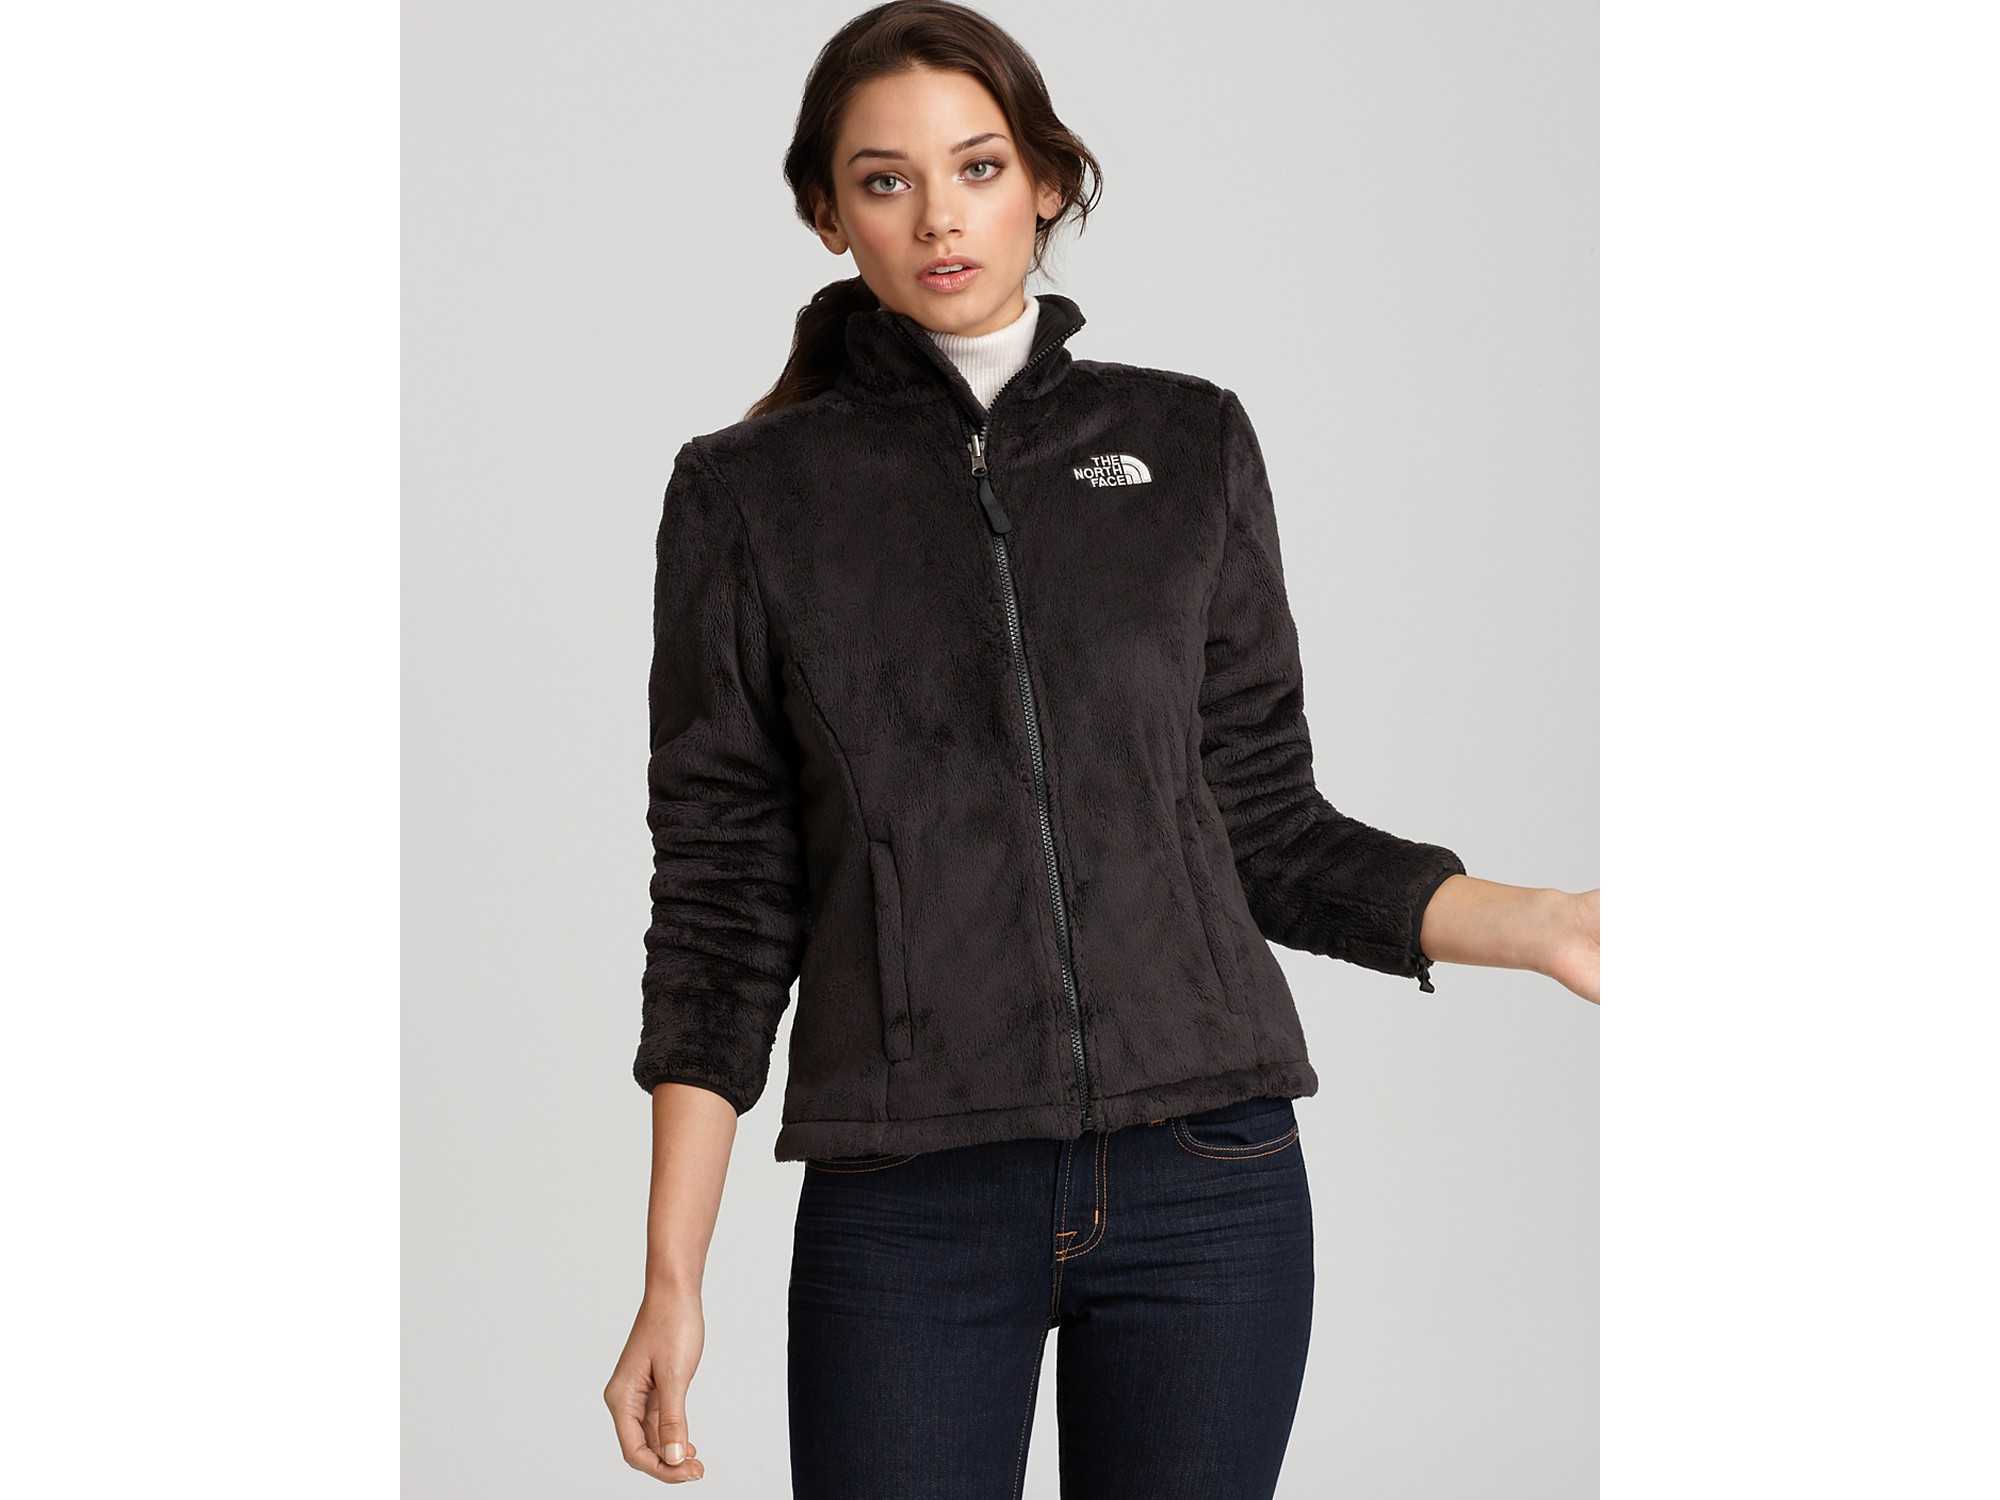 Lyst - The North Face Osito Jacket in Black c64646c4d